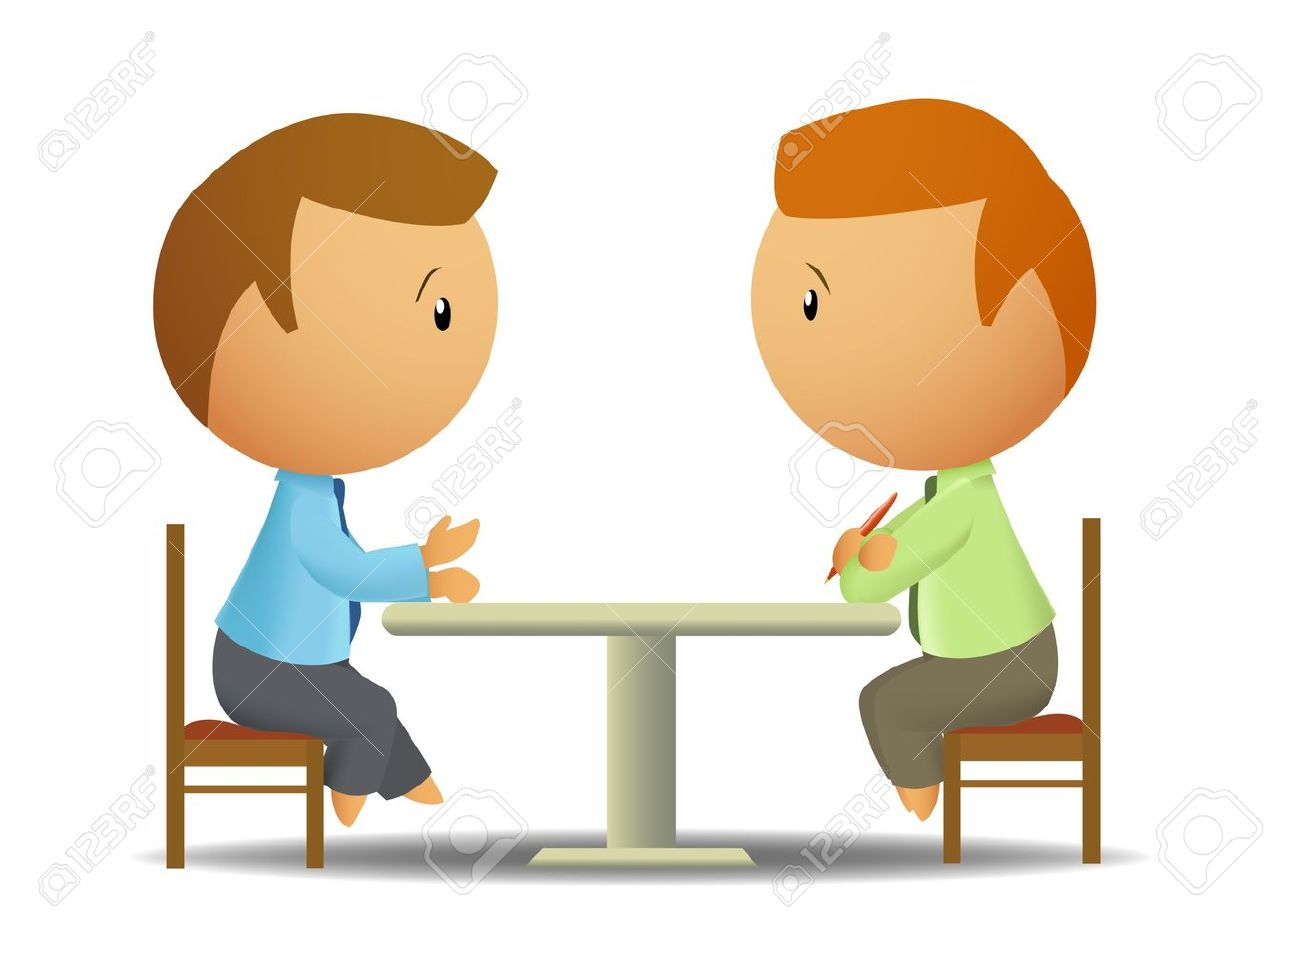 two people talking clipart 5 clipart station rh clipartstation com people talking clip art images Two People Talking